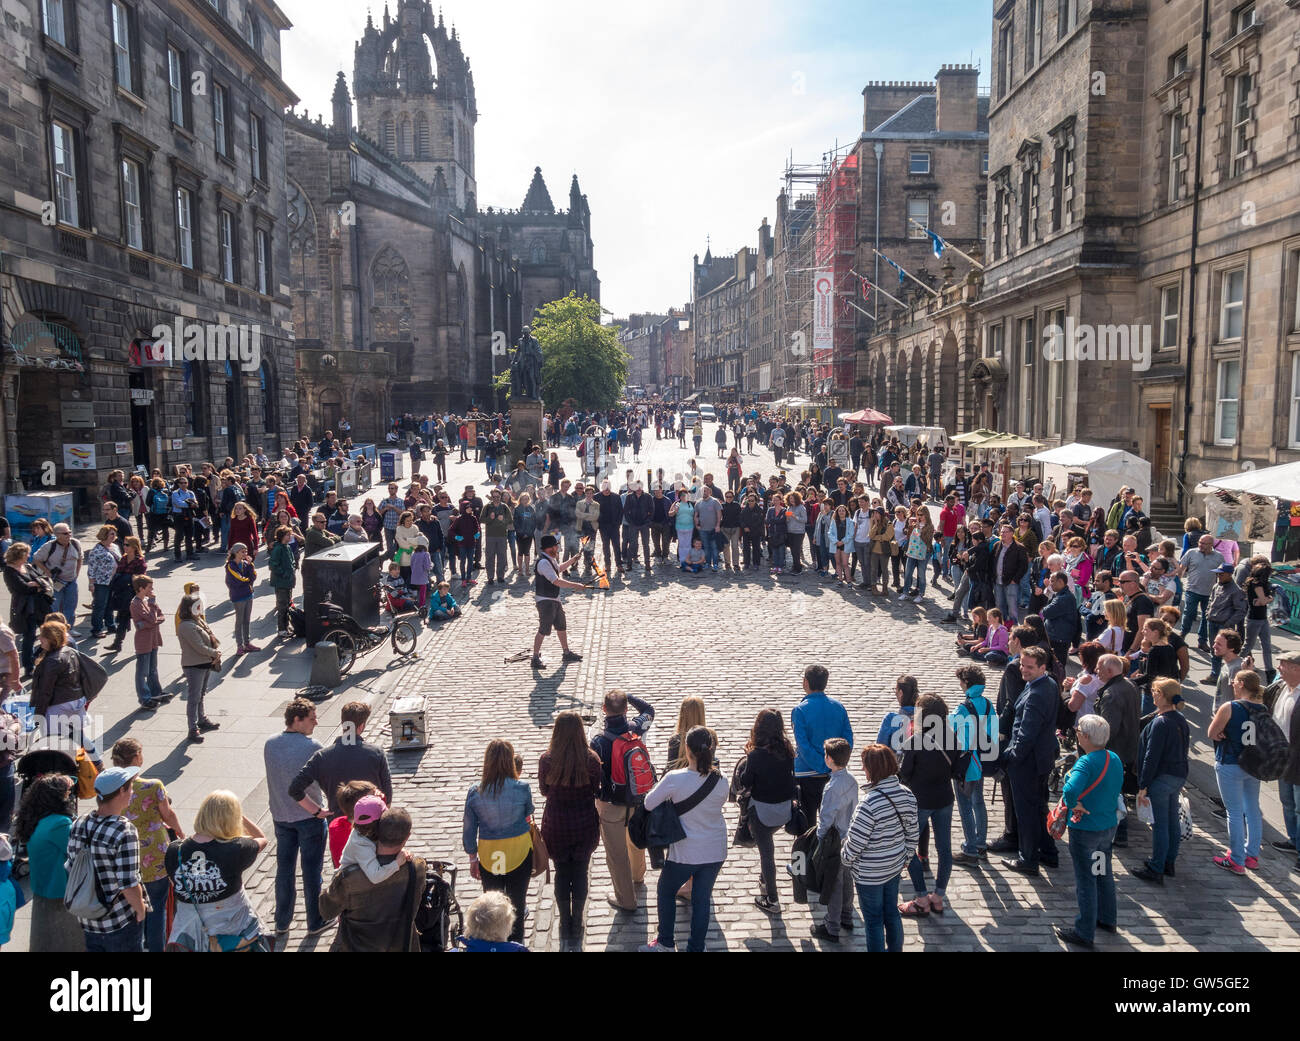 https://c7.alamy.com/comp/GW5GE2/edinburgh-royal-mile-edinburgh-high-street-with-fire-performer-and-GW5GE2.jpg